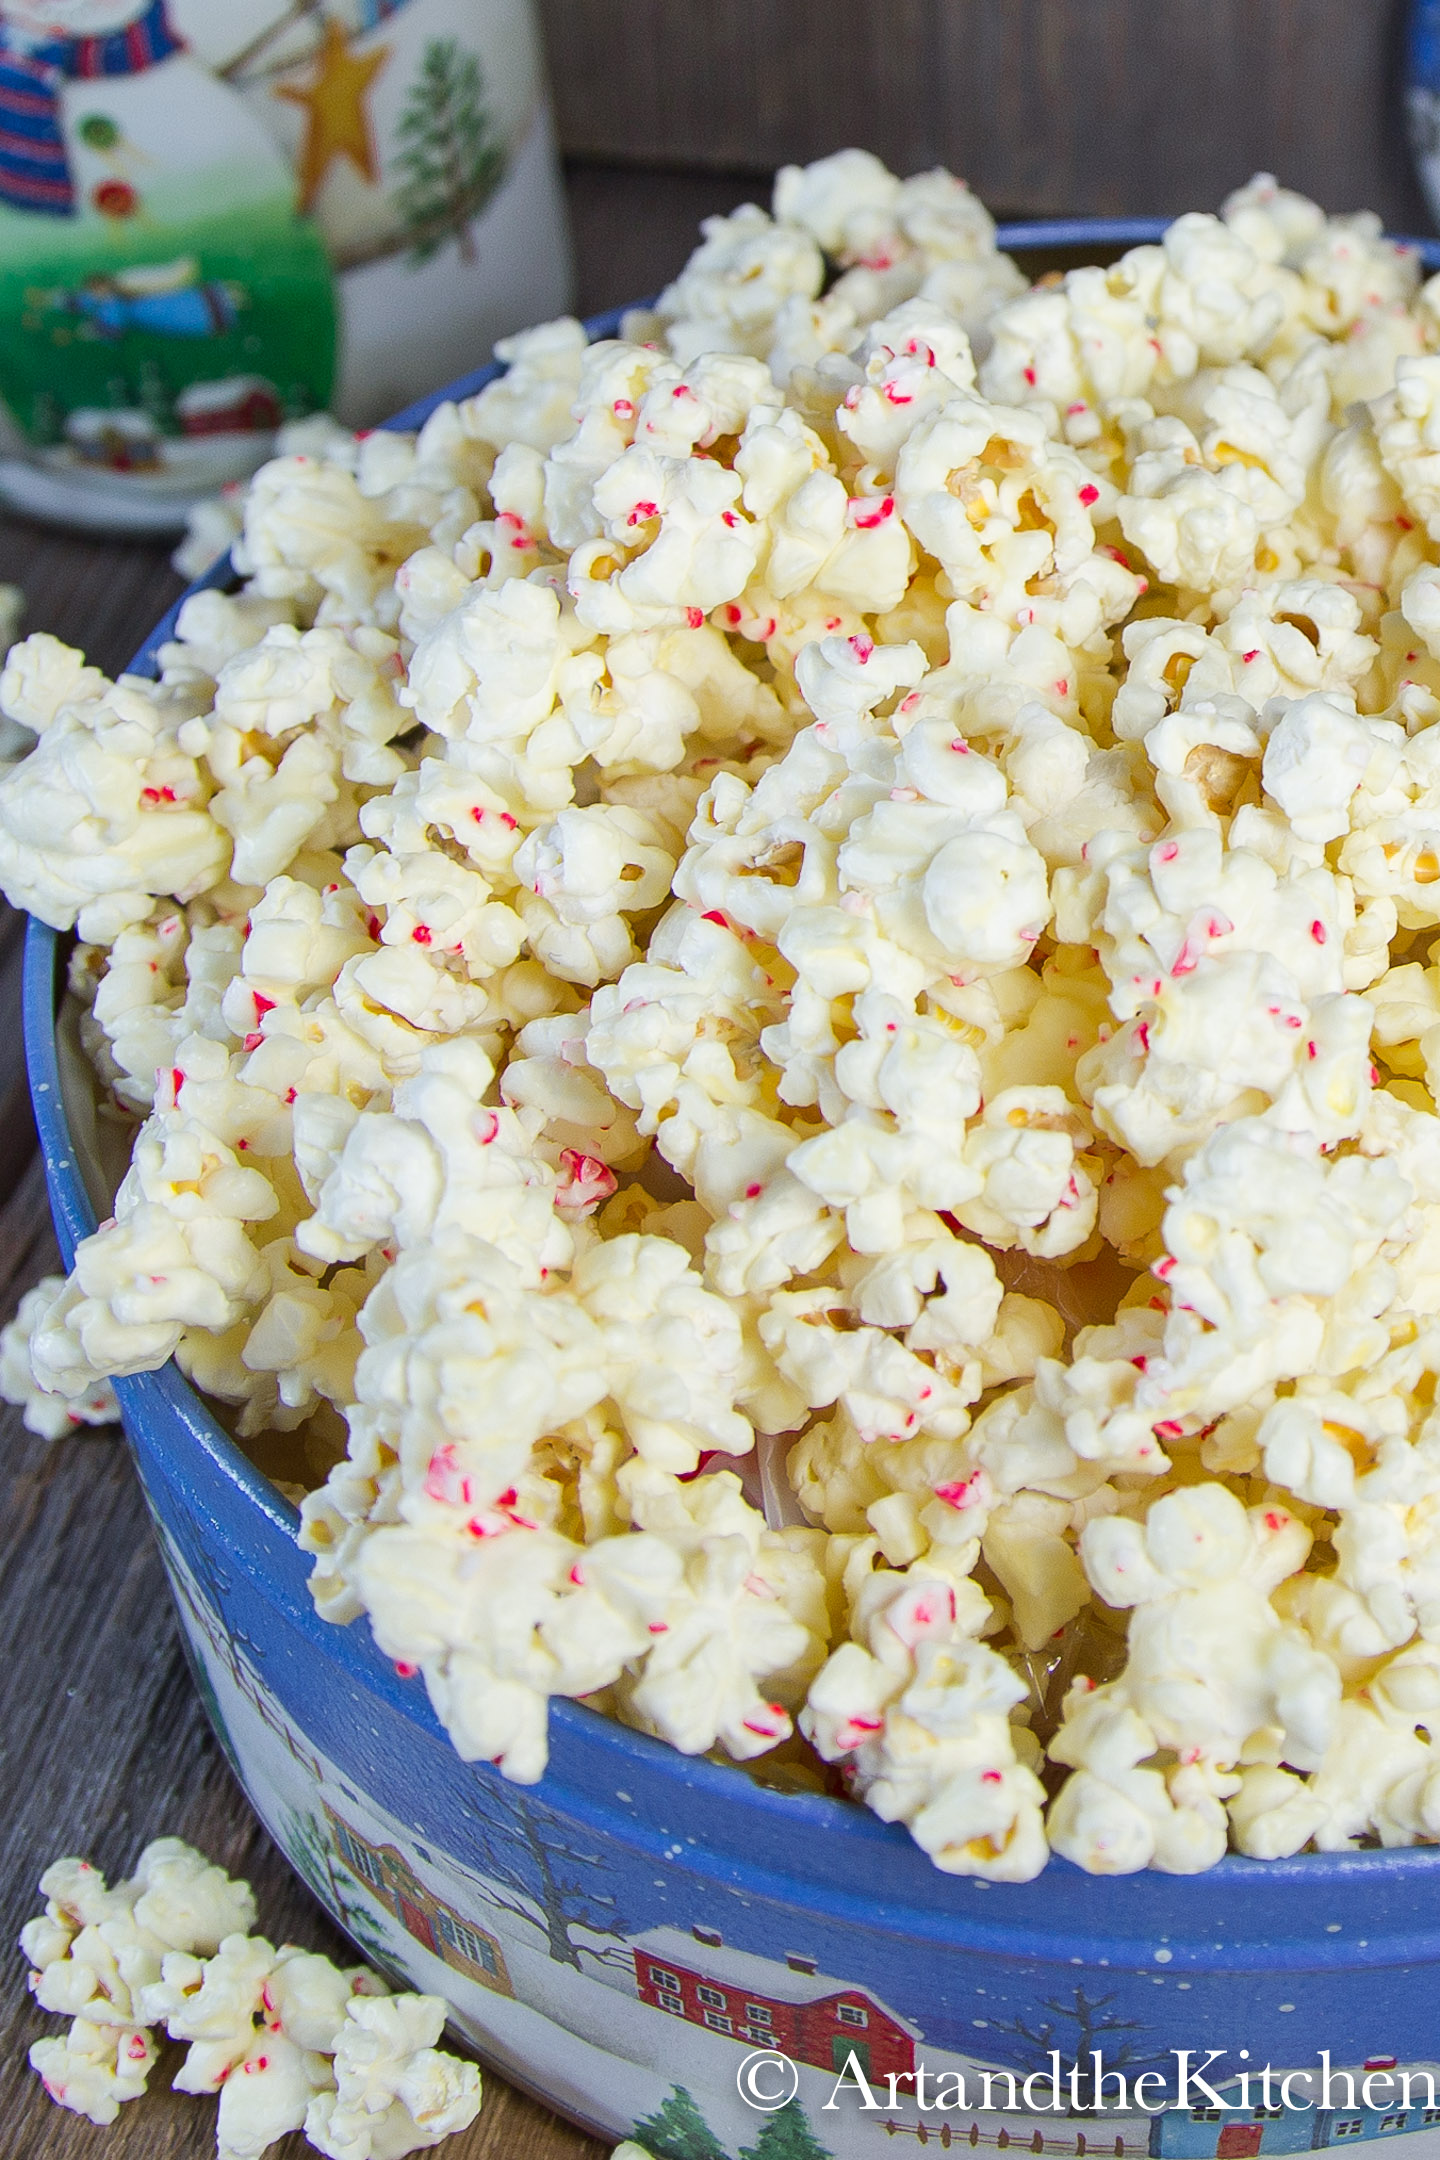 Decorative Holiday container filled with popcorn coated in white chocolate and pieces of candy cane.